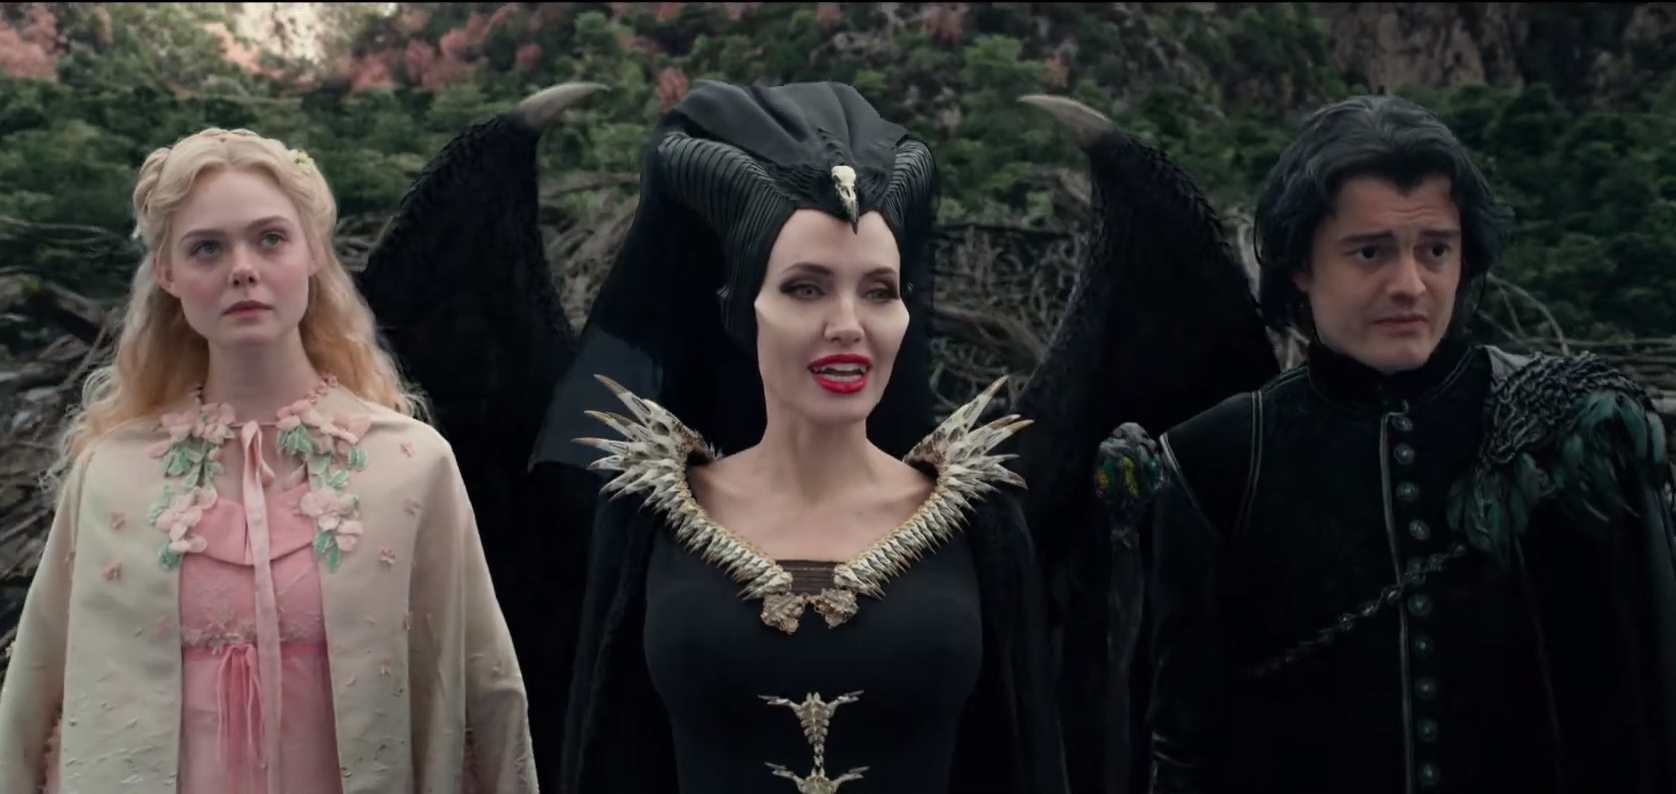 Kohler Co And Disney Team Up On Maleficent Mistress Of